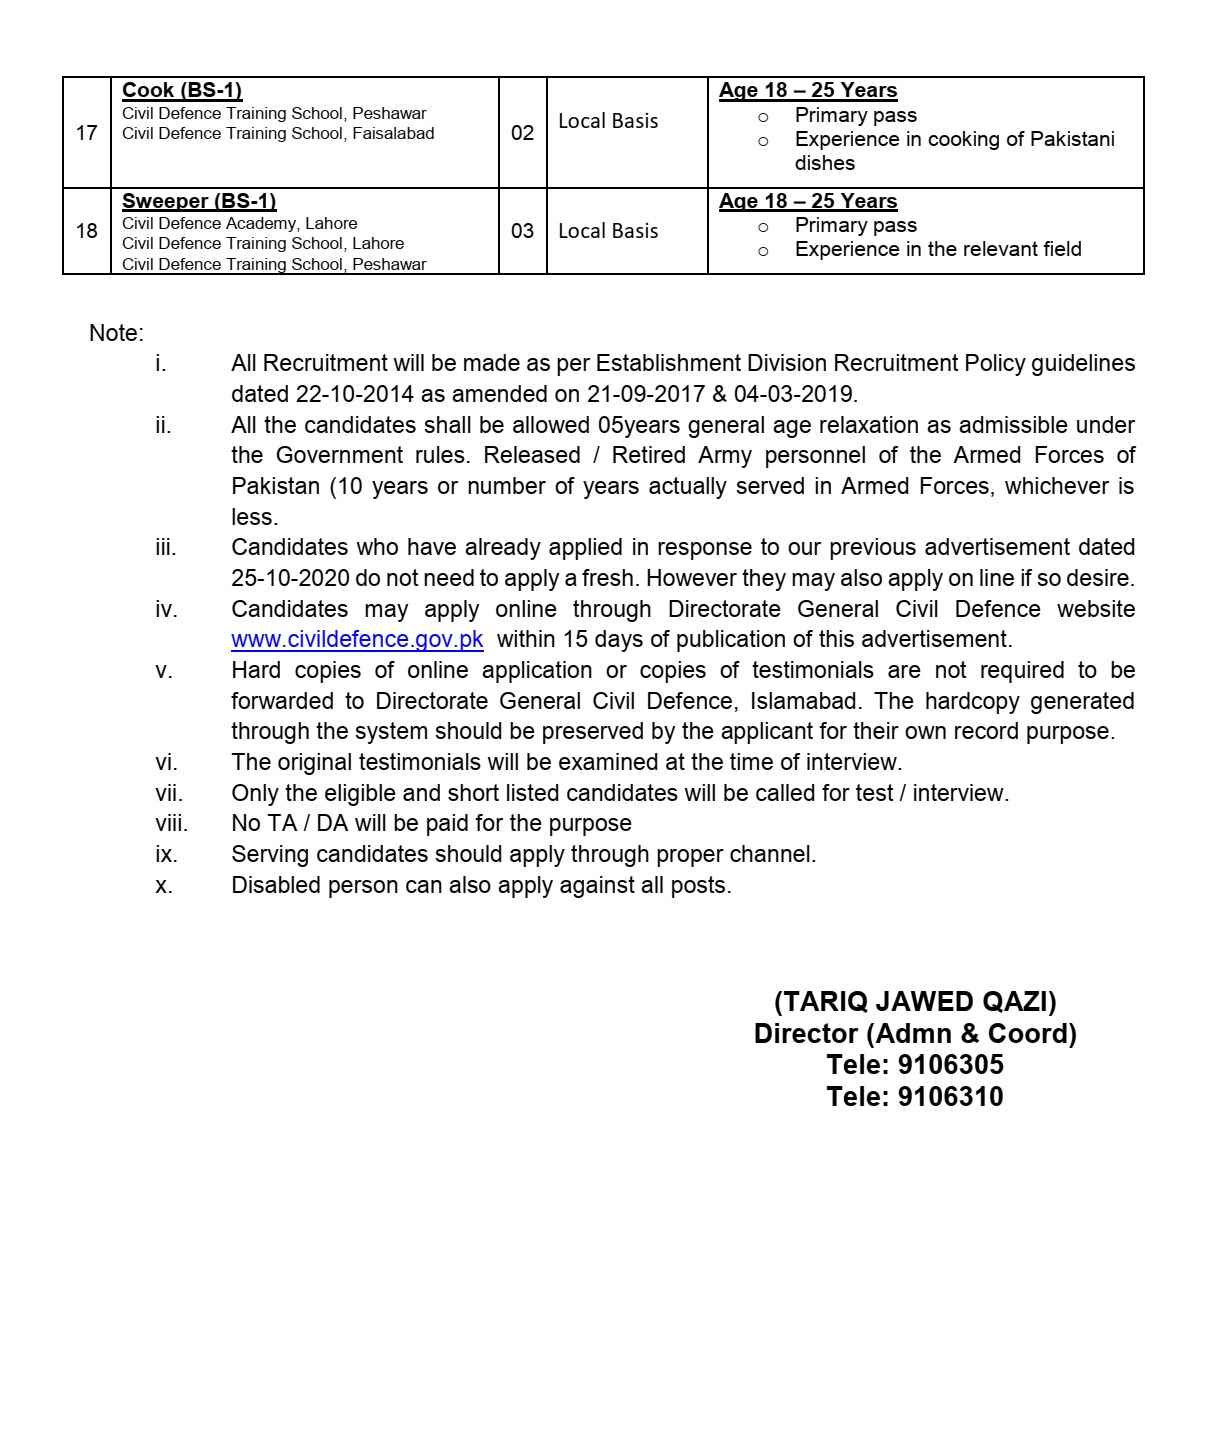 Ministry of Interior Government of Pakistan Directorate General Civil Defence Jobs 2021 For Assistant, Instructor, Steno Typist, Lower Division Clerk, LDC & more